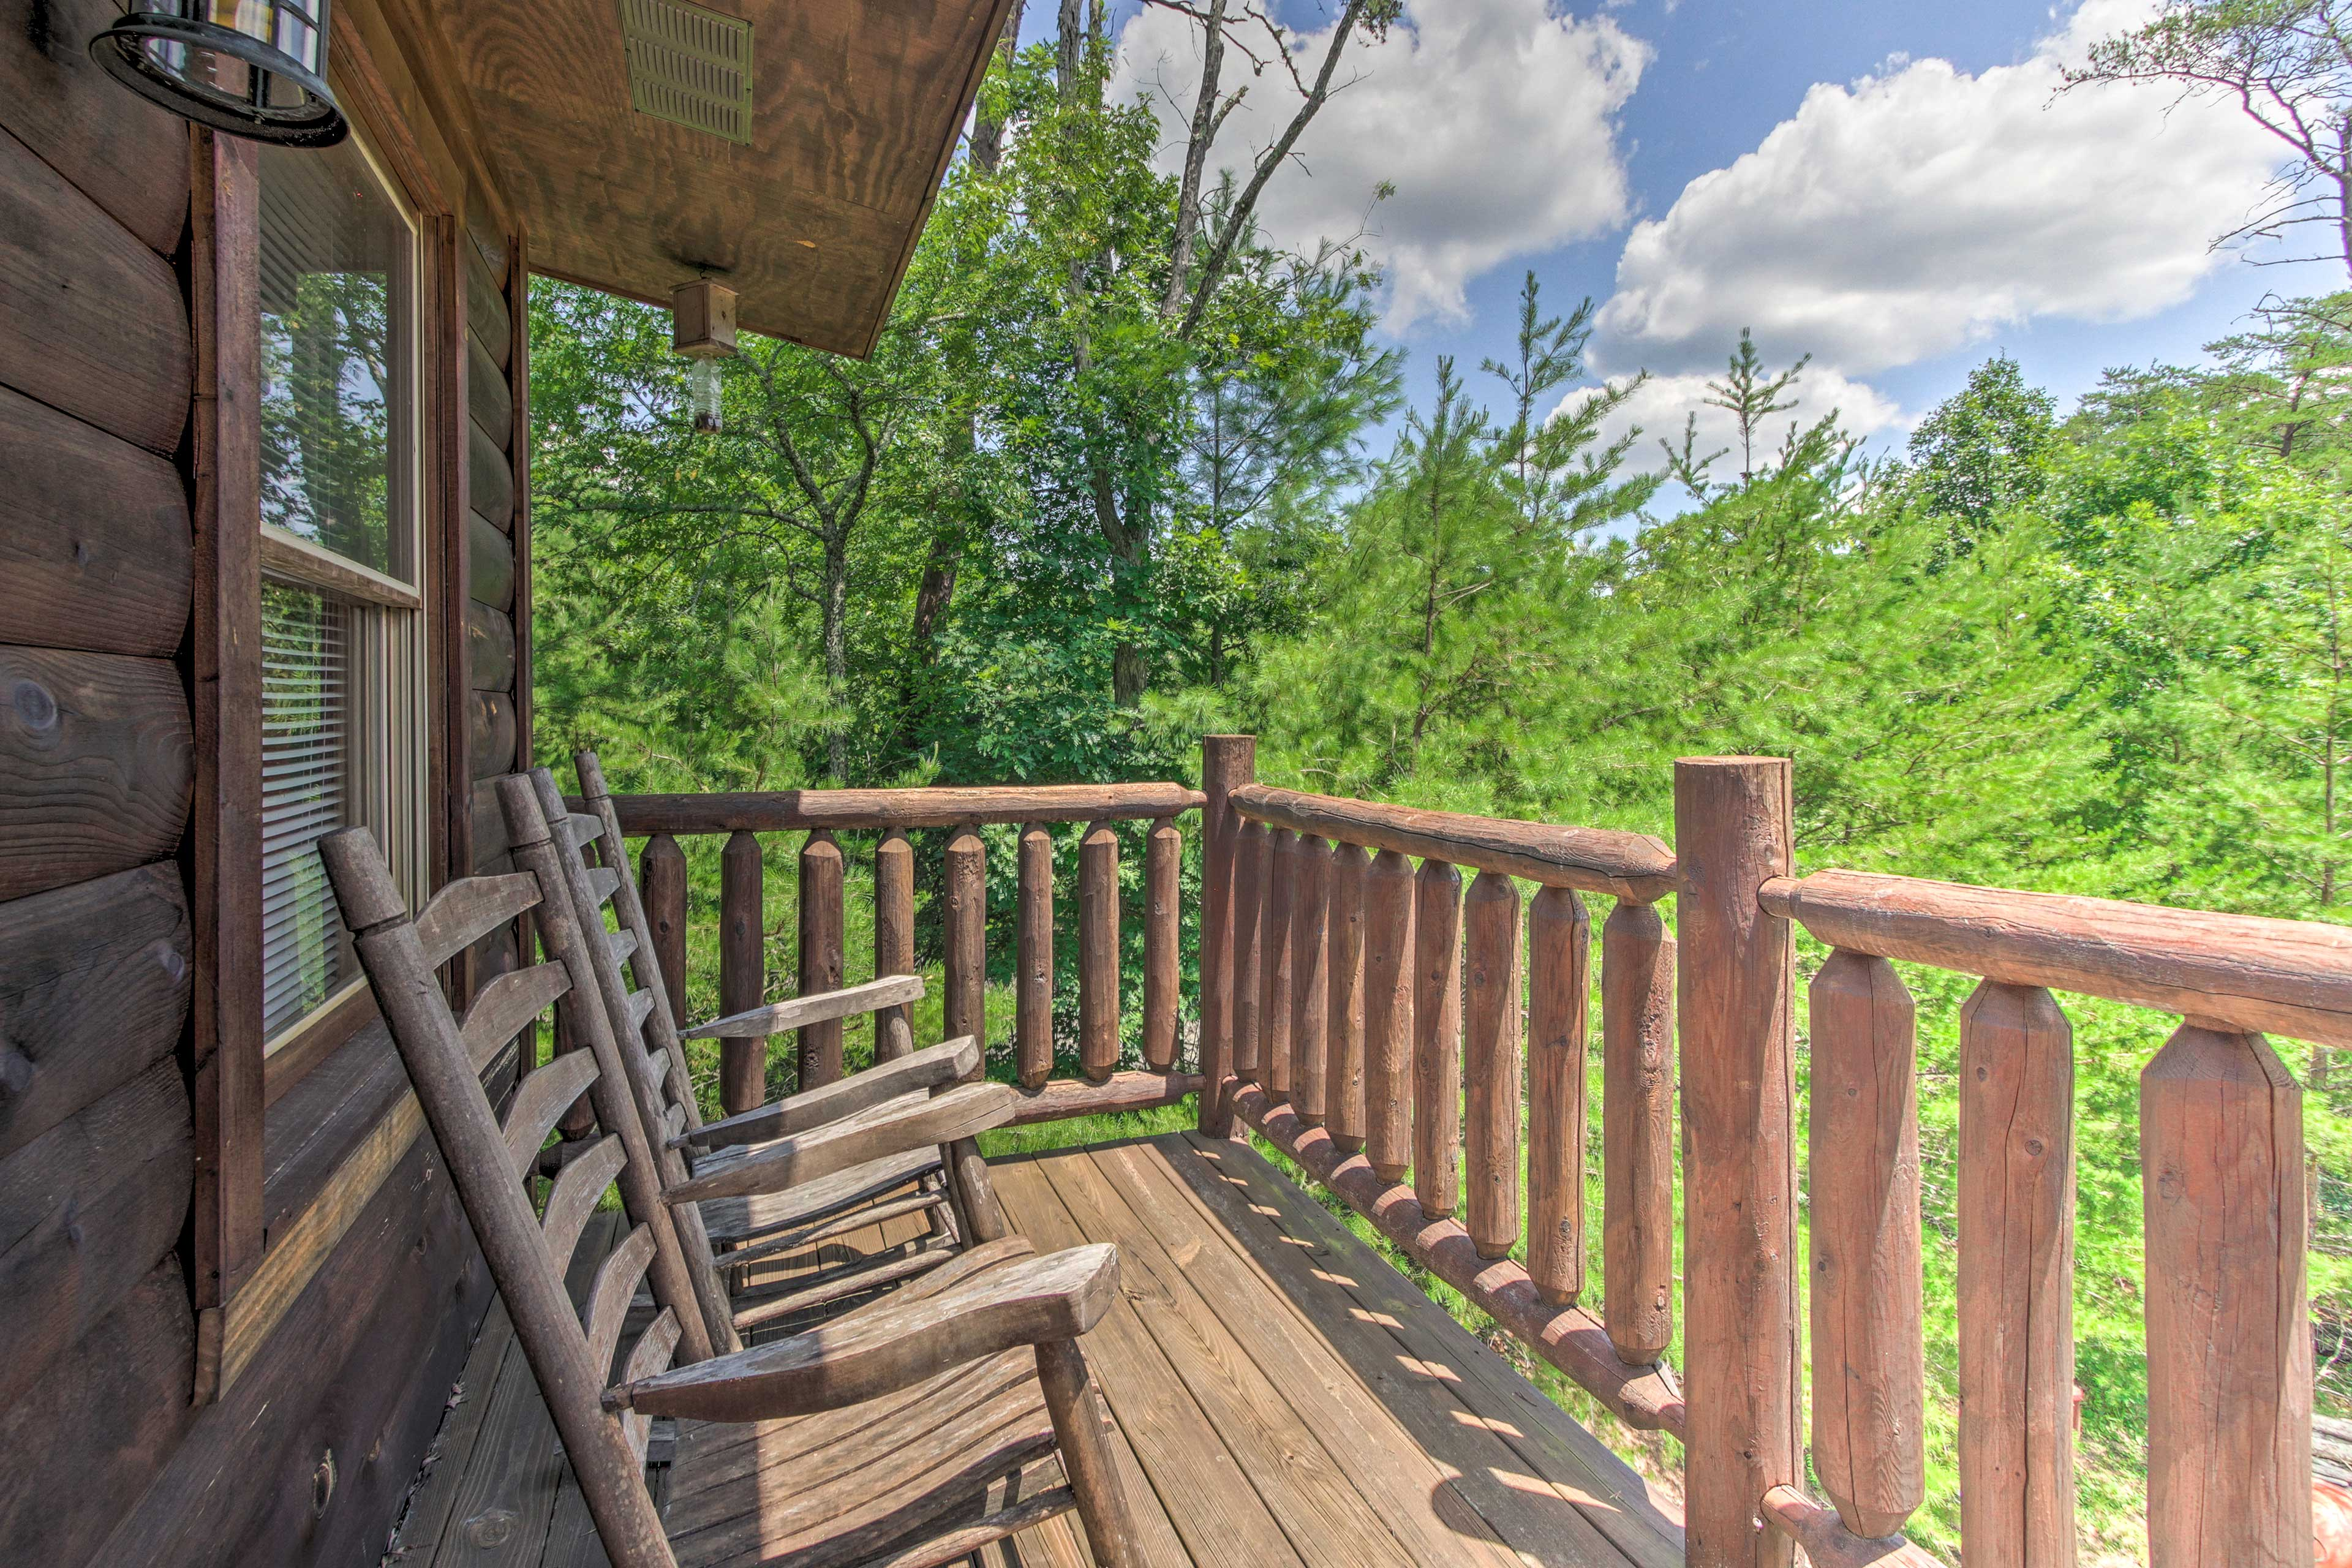 The vacation rental cabin boasts beautiful forest views!